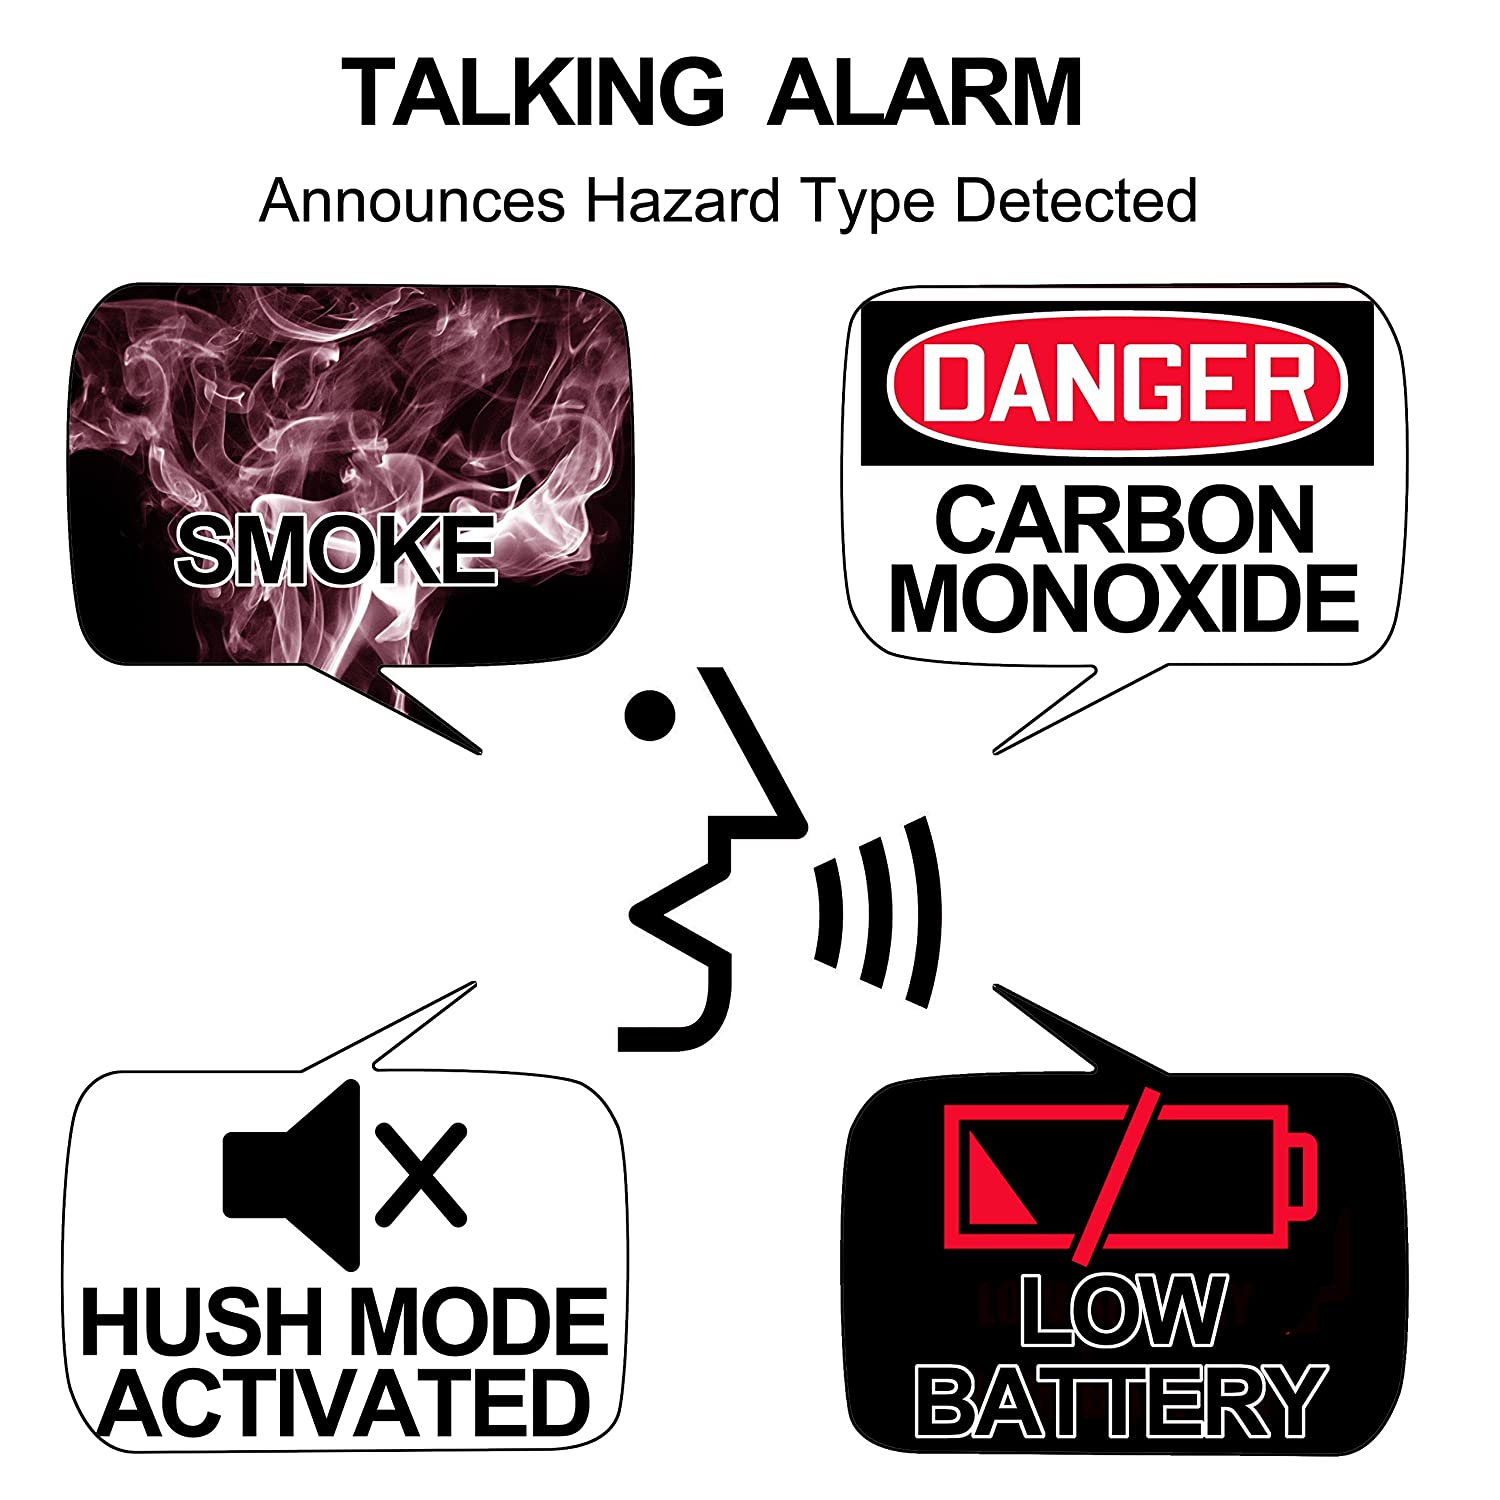 Kidde 21026043 Battery Operatednot Hardwired Combination Smoke Wiring Detectors Diagram Furthermore Hard Carbon Monoxide Alarm With Voice Warning Kn Cosm Ba 1 Pack White